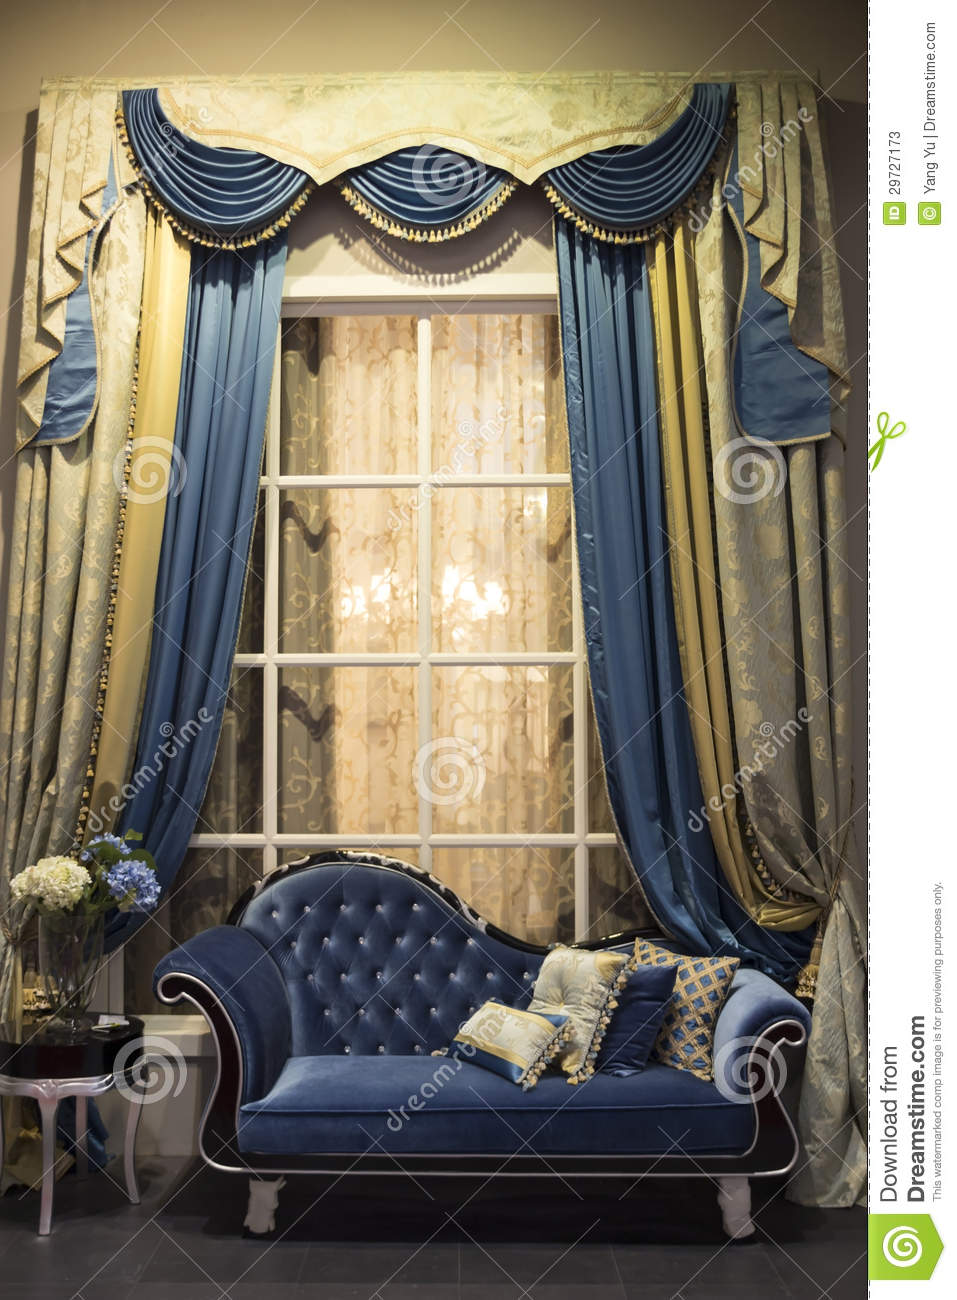 Interior With Sofa And Curtains Stock Photos Image